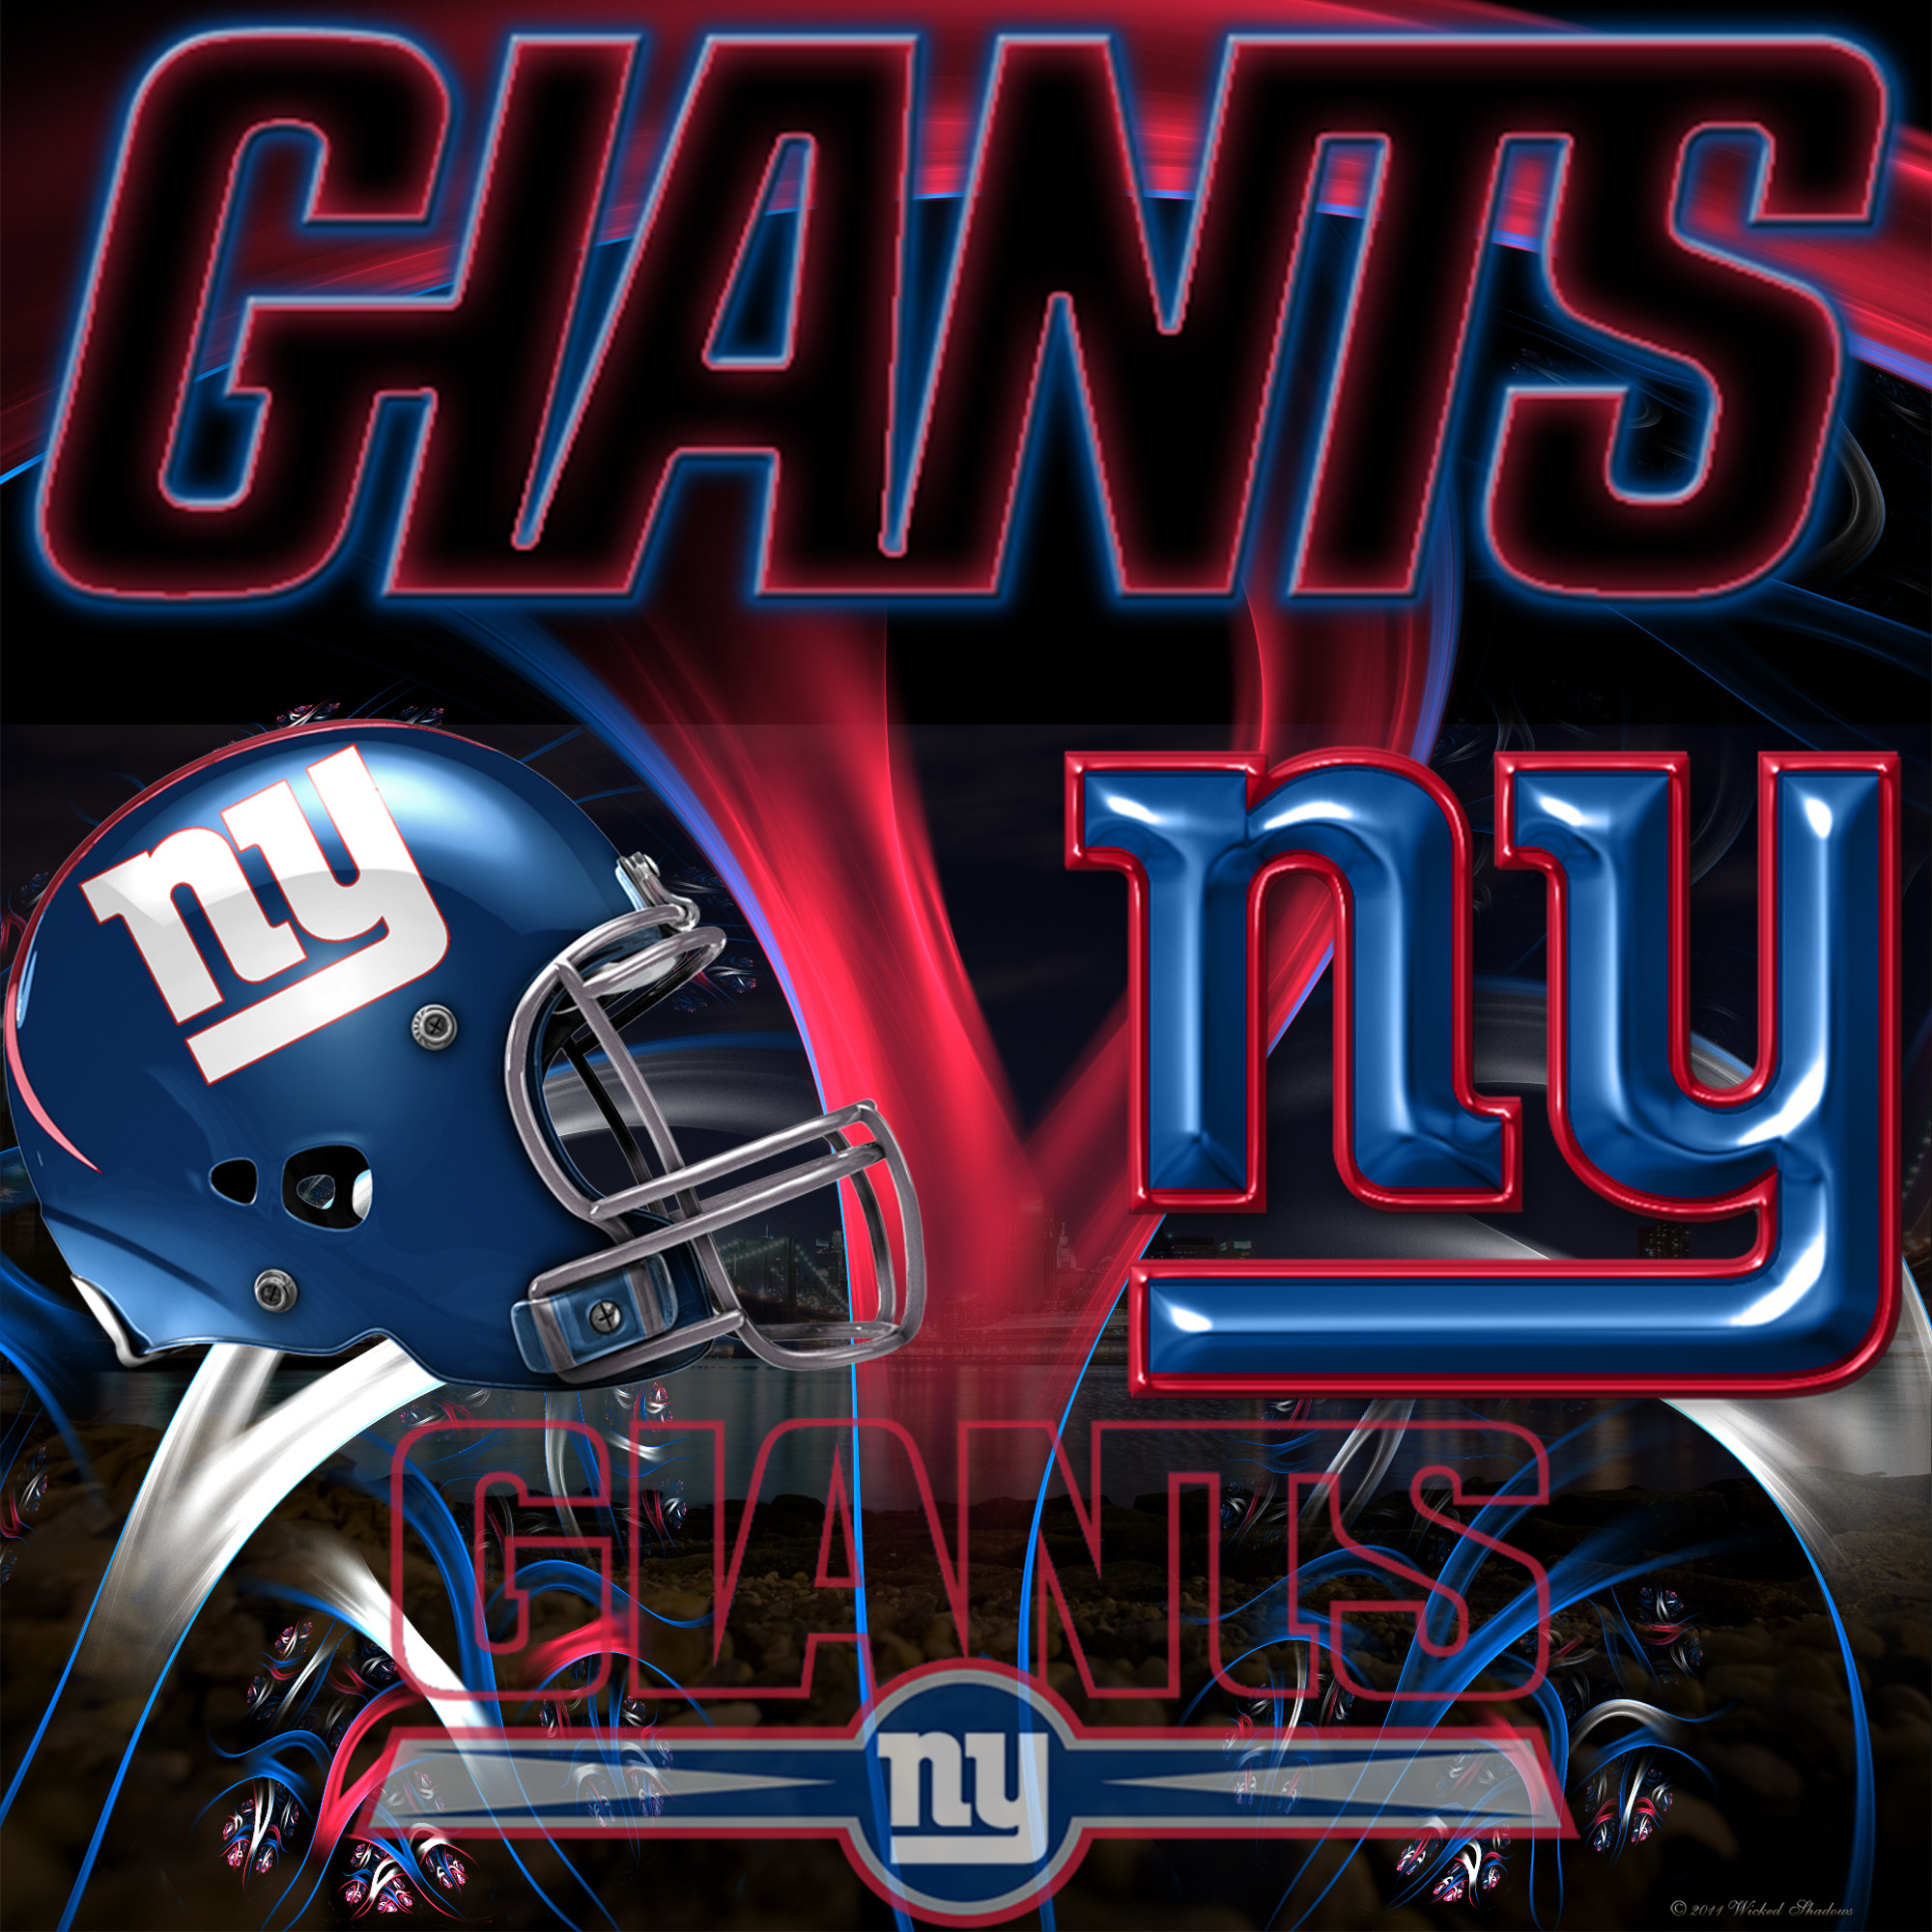 2560x1440 New York Giants Wallpaper Inspirational New York Giants Nfl Football E Wallpapers Desktop Background